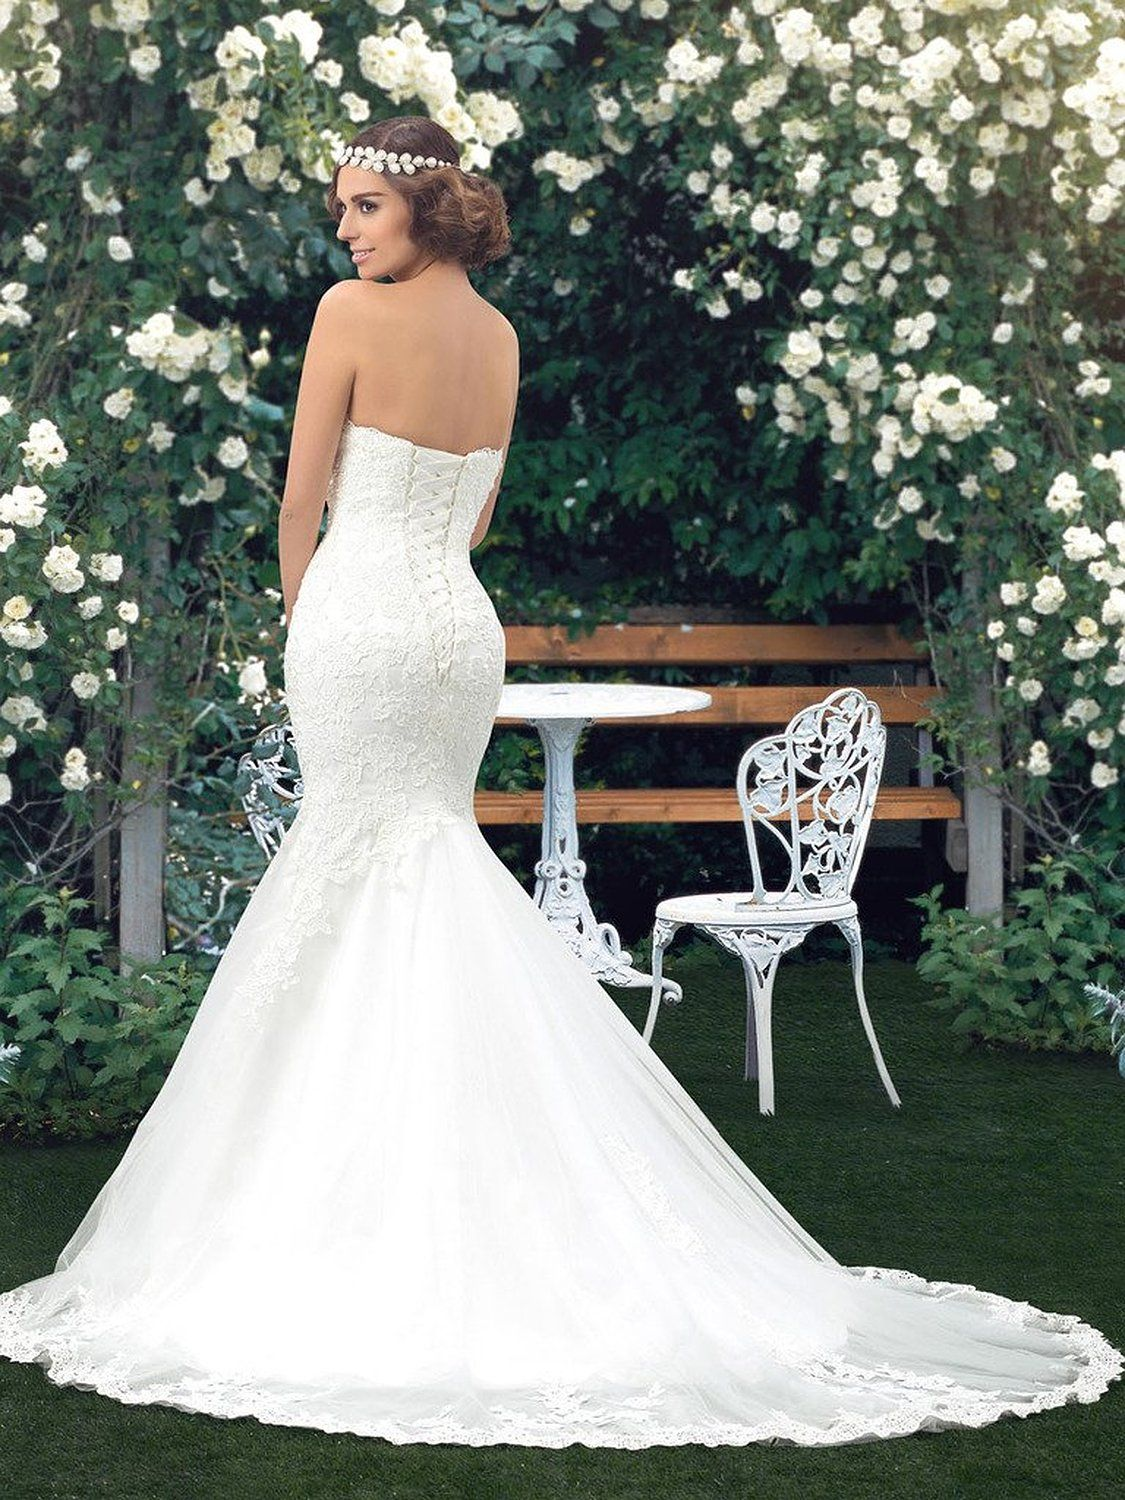 27eedeba865a $189.99 Bridess Women's Sweetheart Tulle Mermaid Wedding Dress for Bride at Amazon  Women's Clothing store: